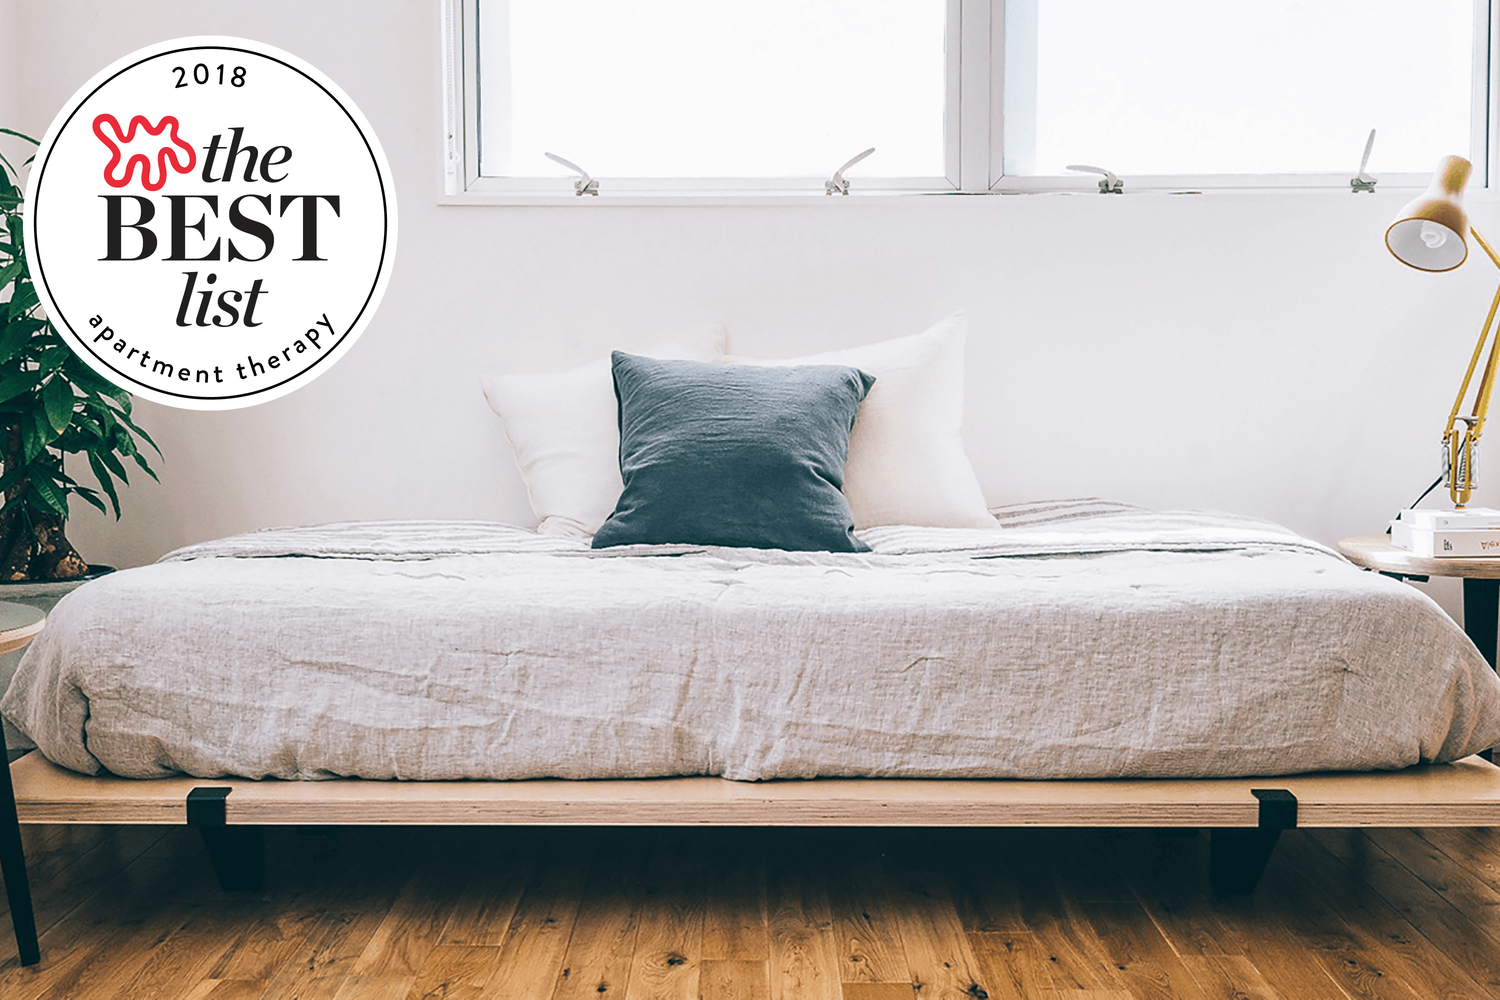 10 Platform Beds That Ll Save You Money When Mattress Shopping Bed Linens Luxury Affordable Bed Frames Best Platform Beds